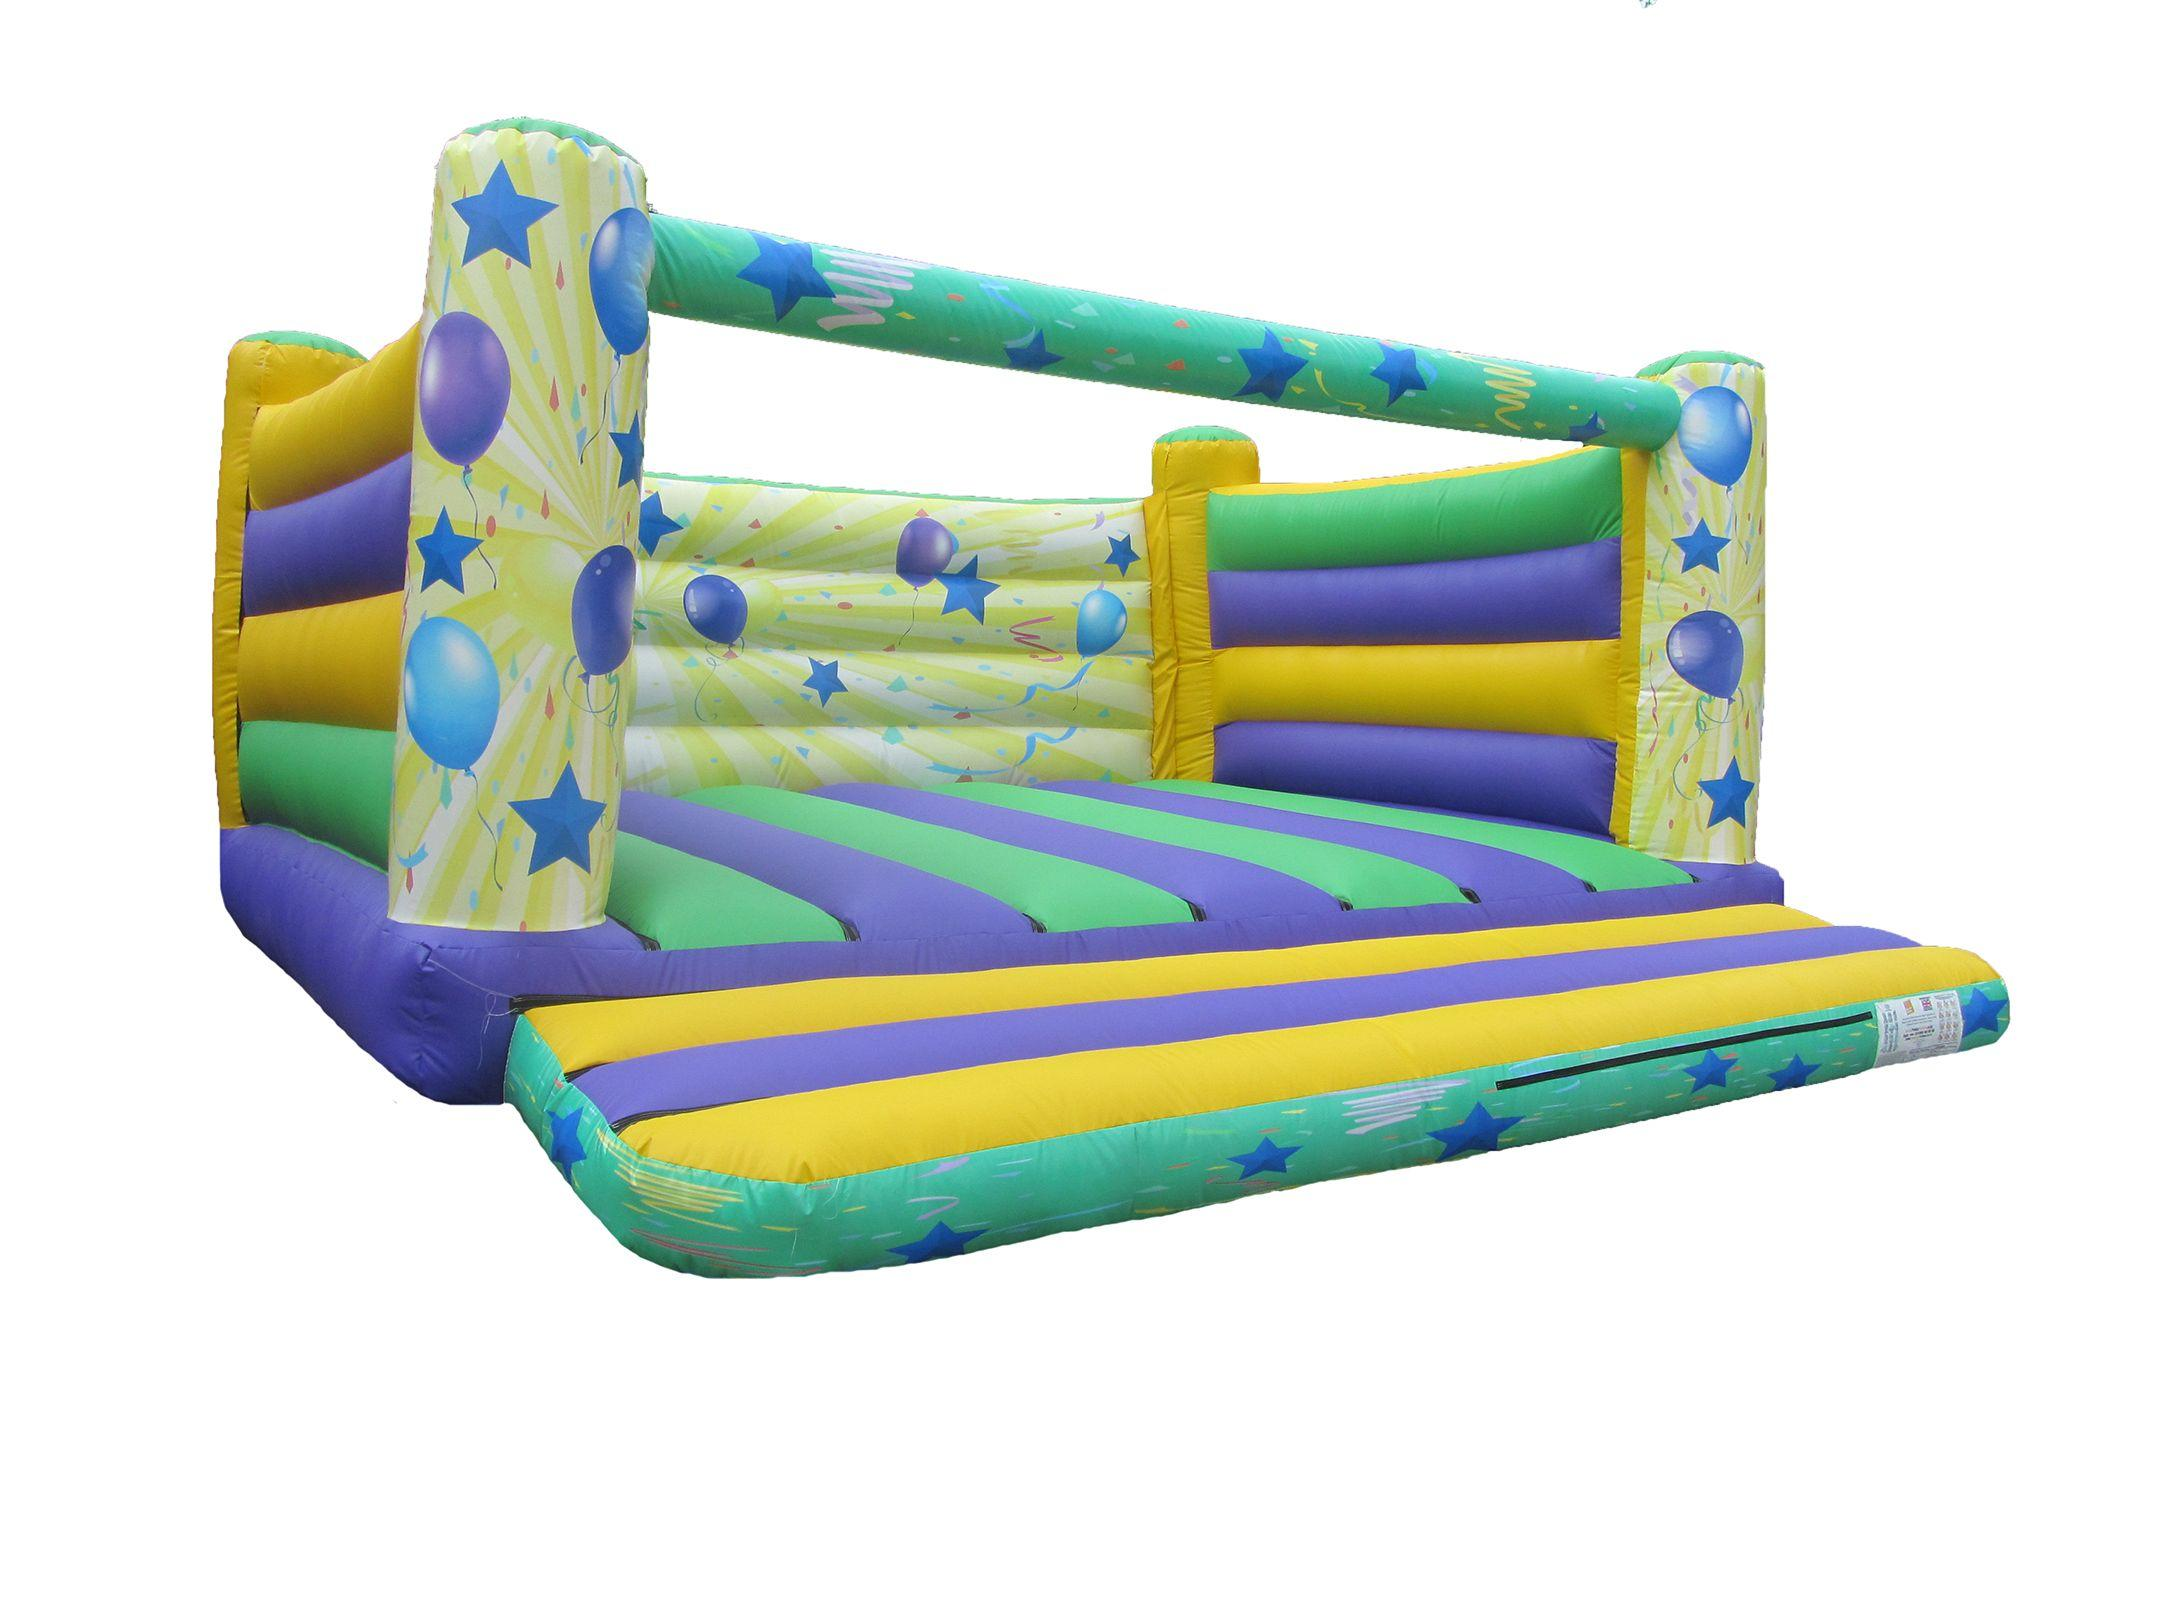 18x18 4post printed party adults bouncy castle compressor